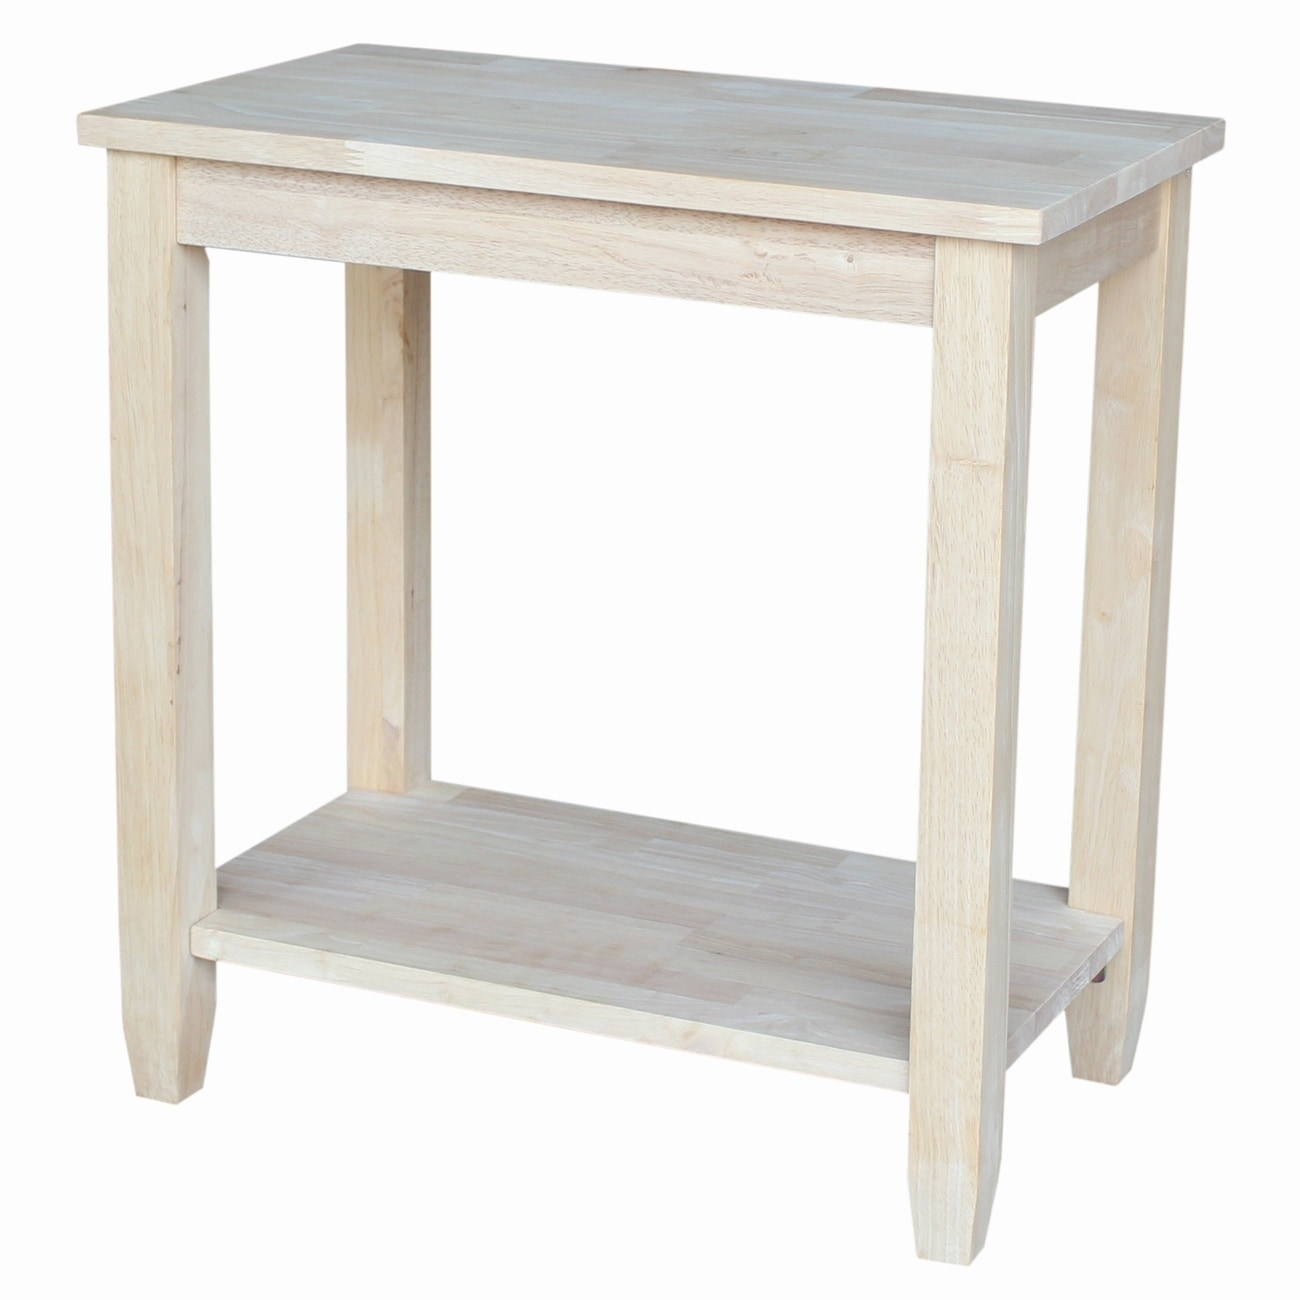 Solano Unfinished Solid Parawood Accent Table (Accent Tab...